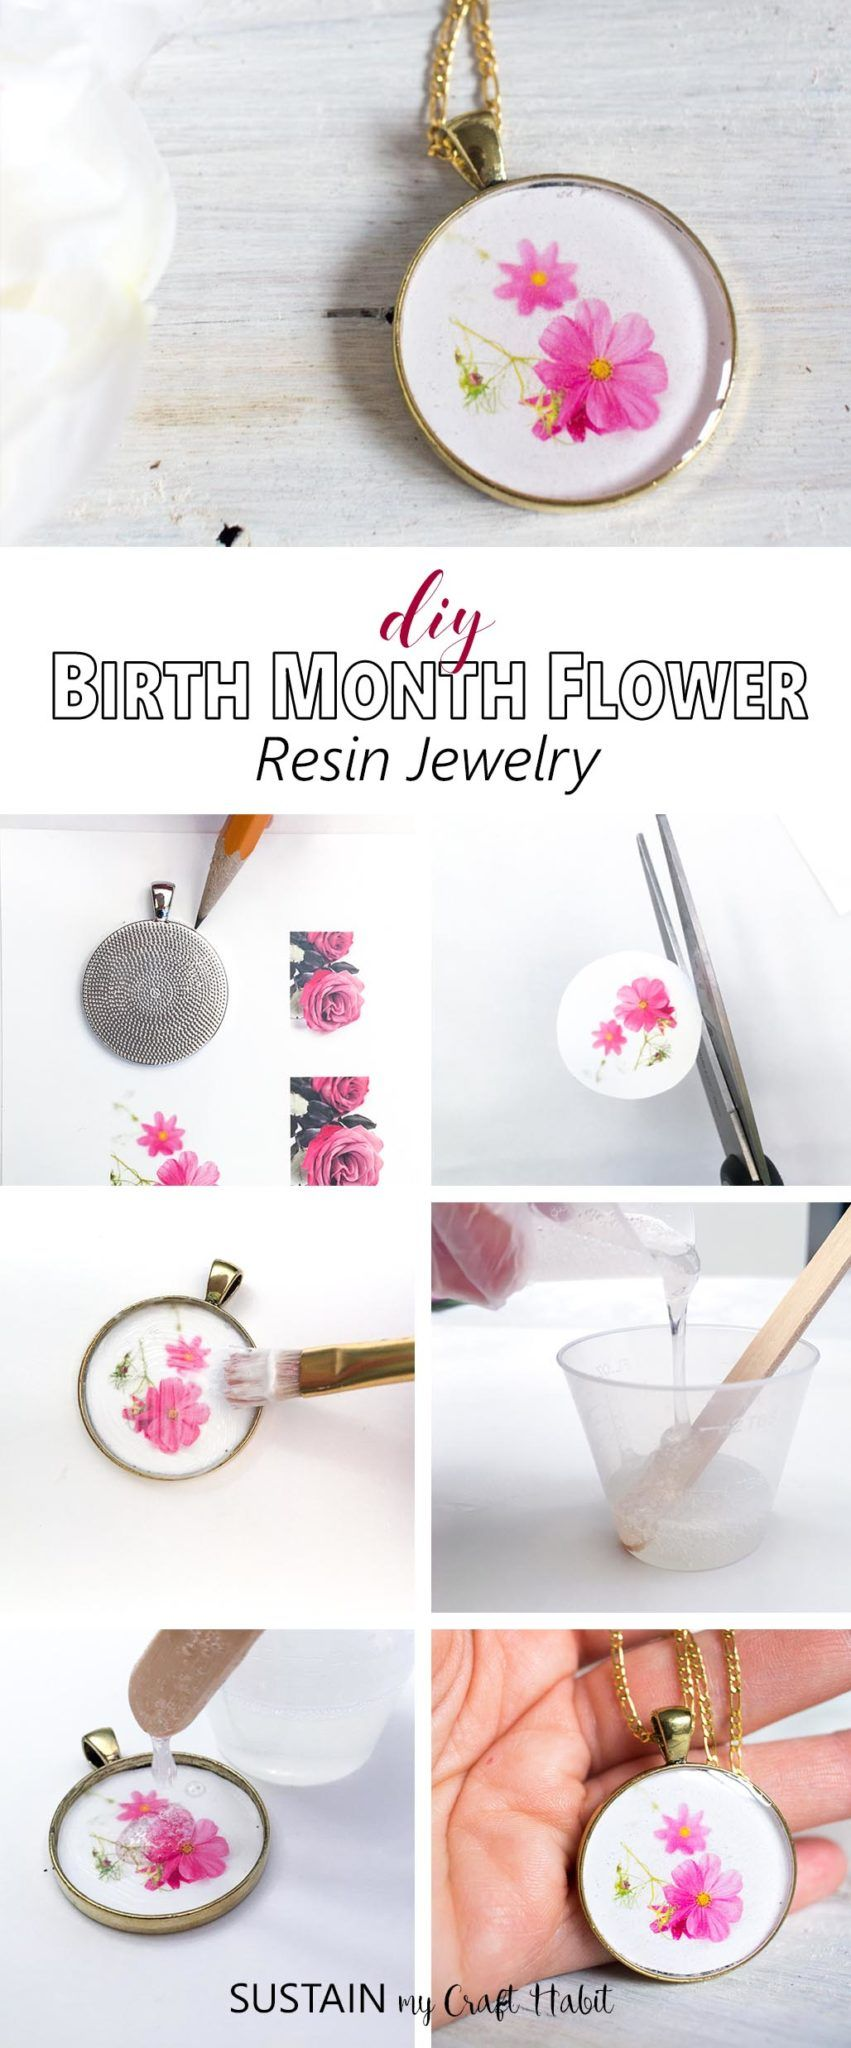 How to make resin jewelry diy birth month flower pendants